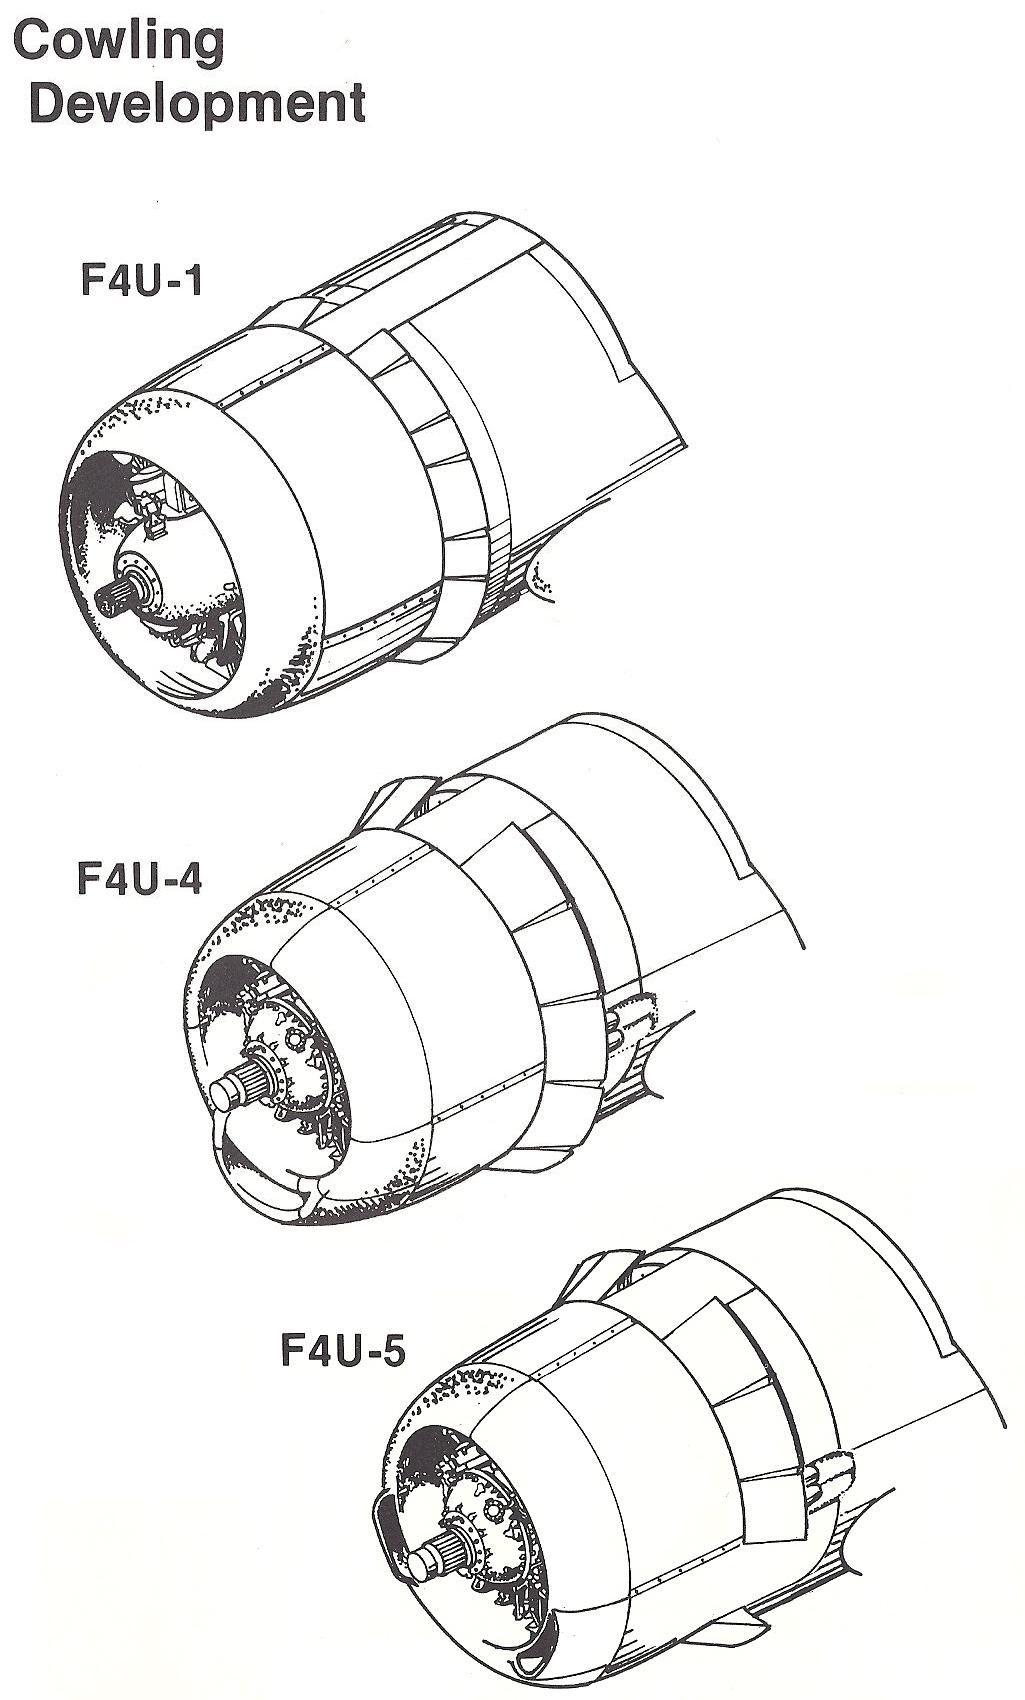 Corsair Cowling Development With Images